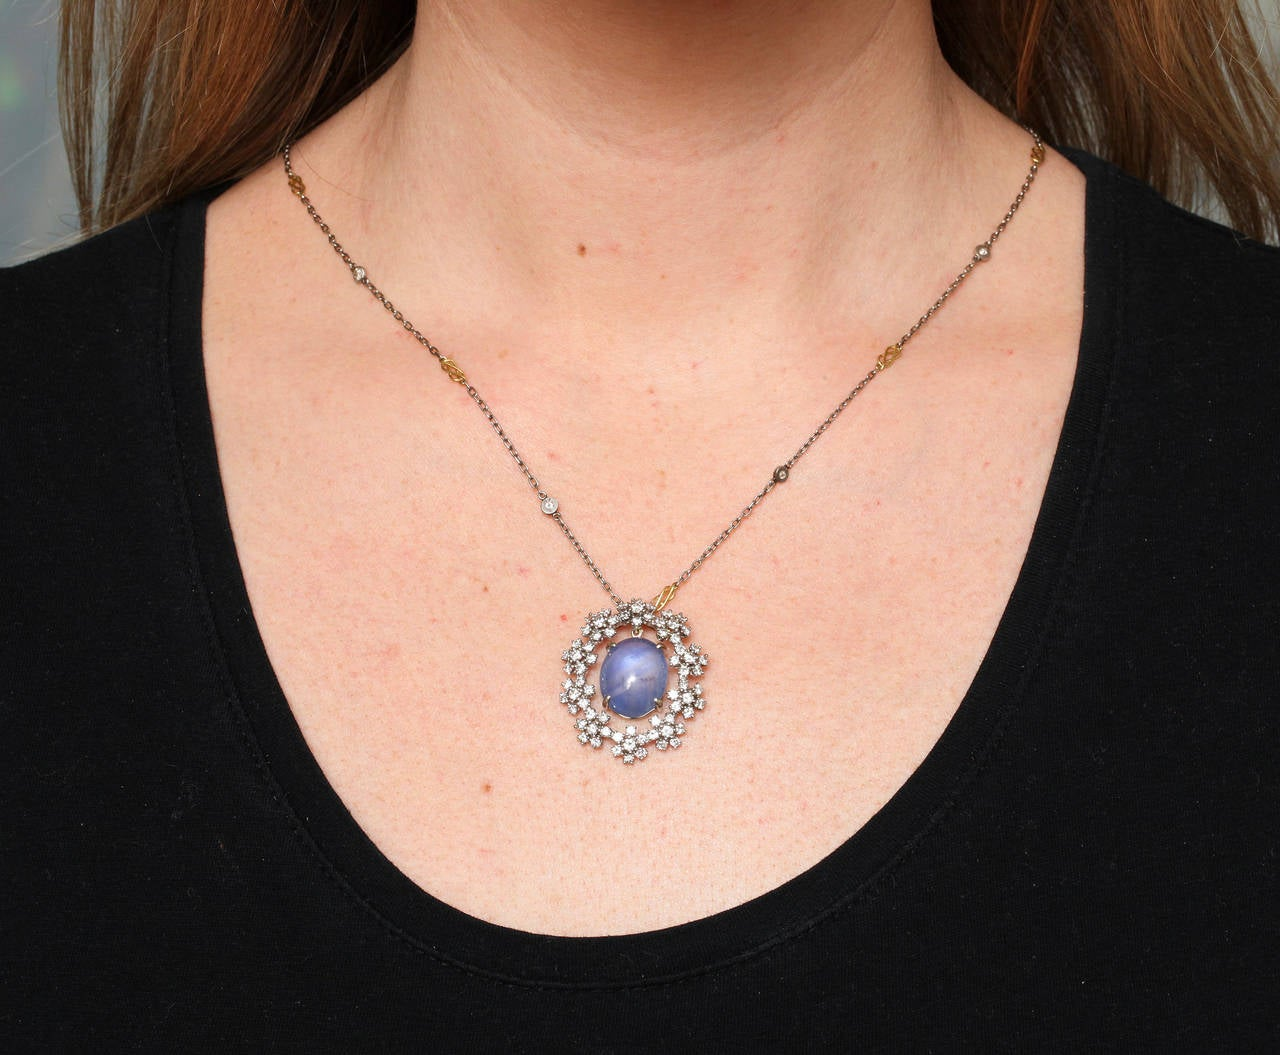 Star sapphire radiant diamond gold pendant for sale at 1stdibs star sapphire radiant diamond gold pendant for sale 1 mozeypictures Choice Image